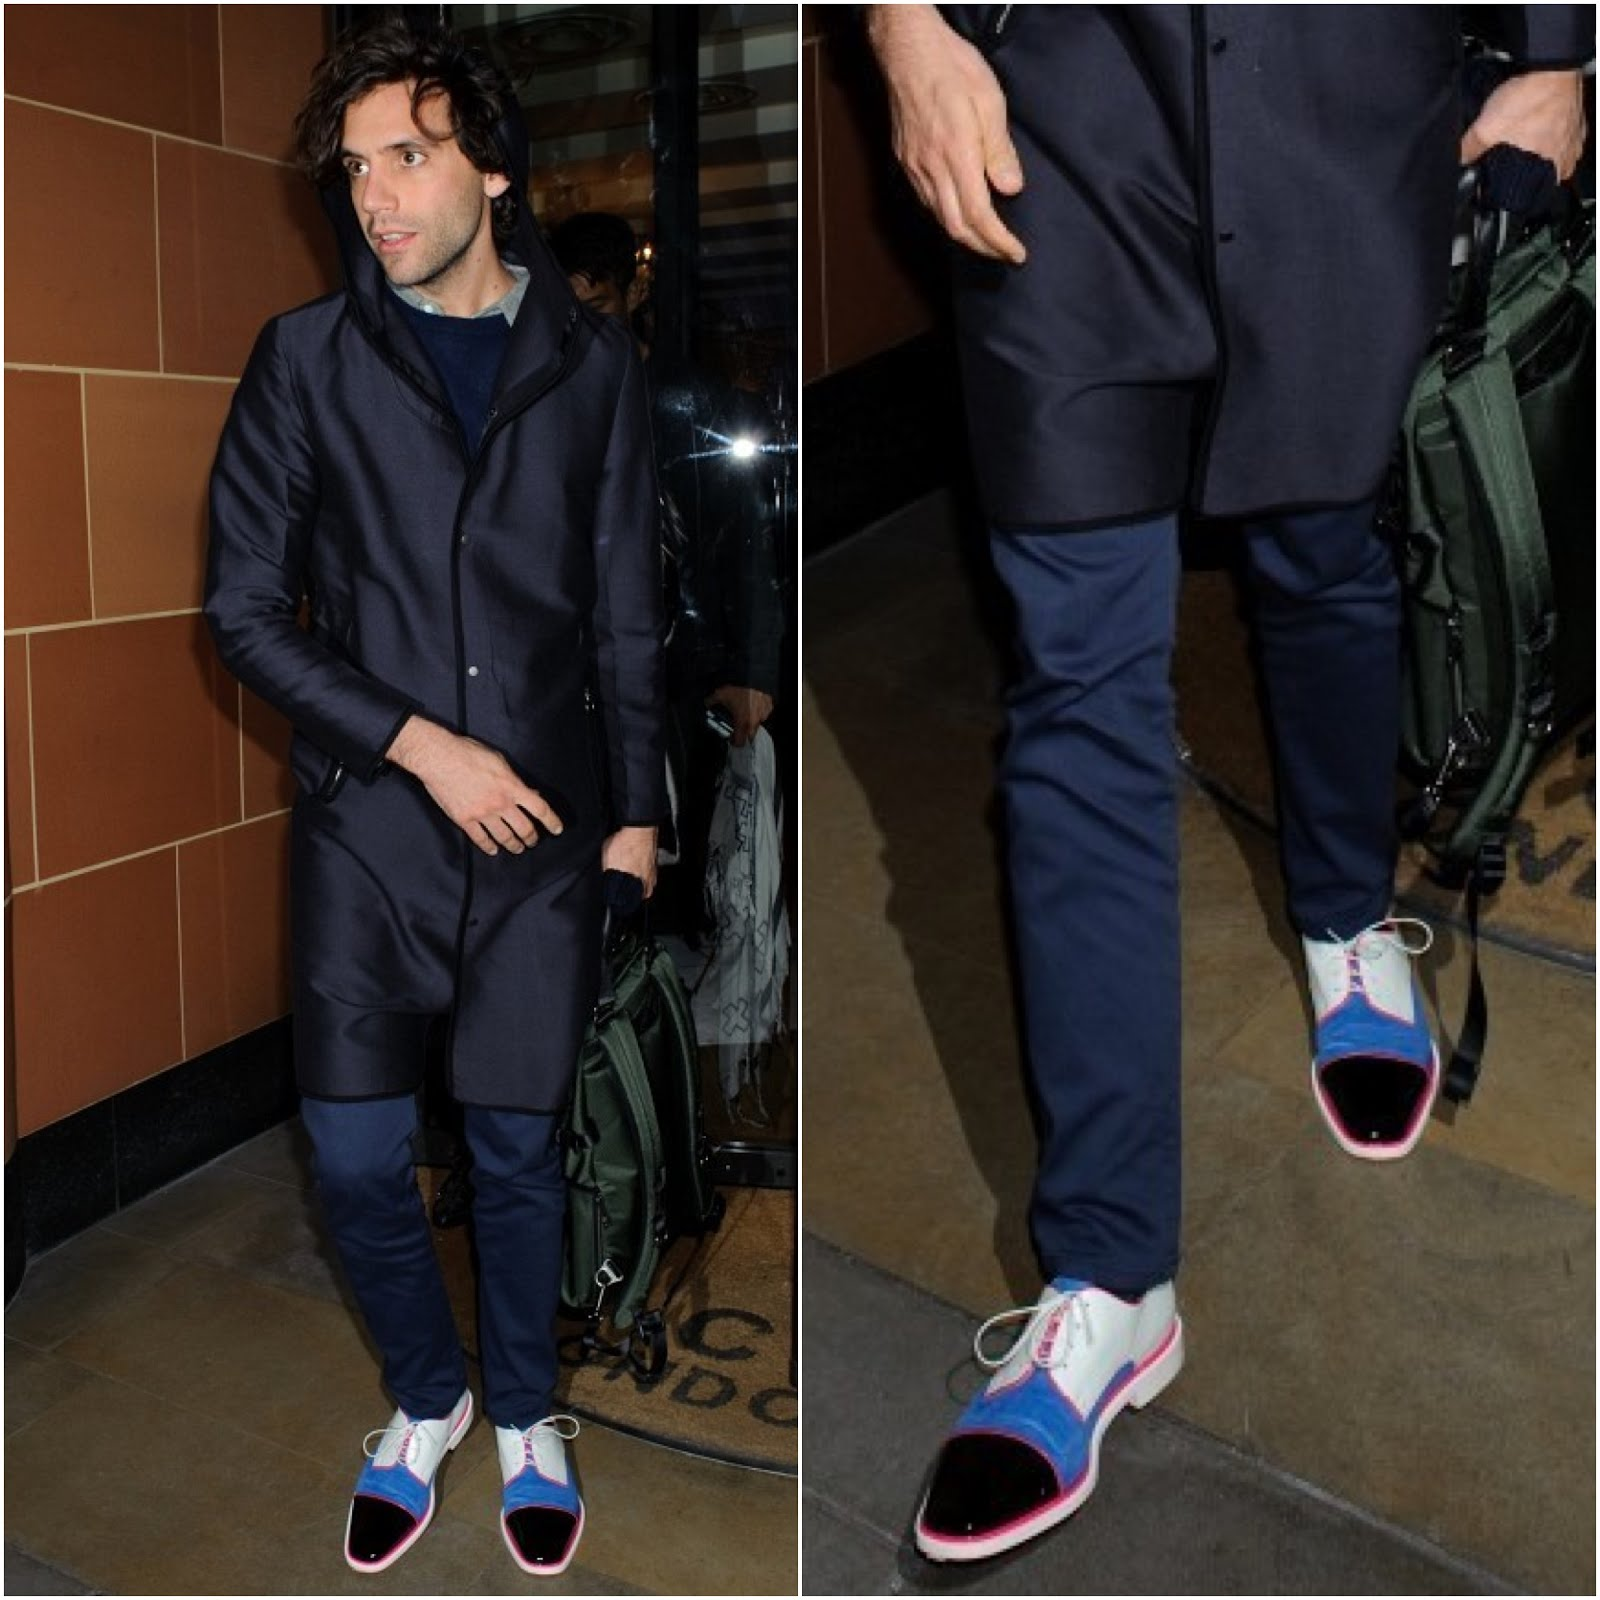 00O00 Menswear Blog Mika's Christian Louboutin @LouboutinWorld 'Bruno Orlato' shoes - C Restaurant, London February 2013